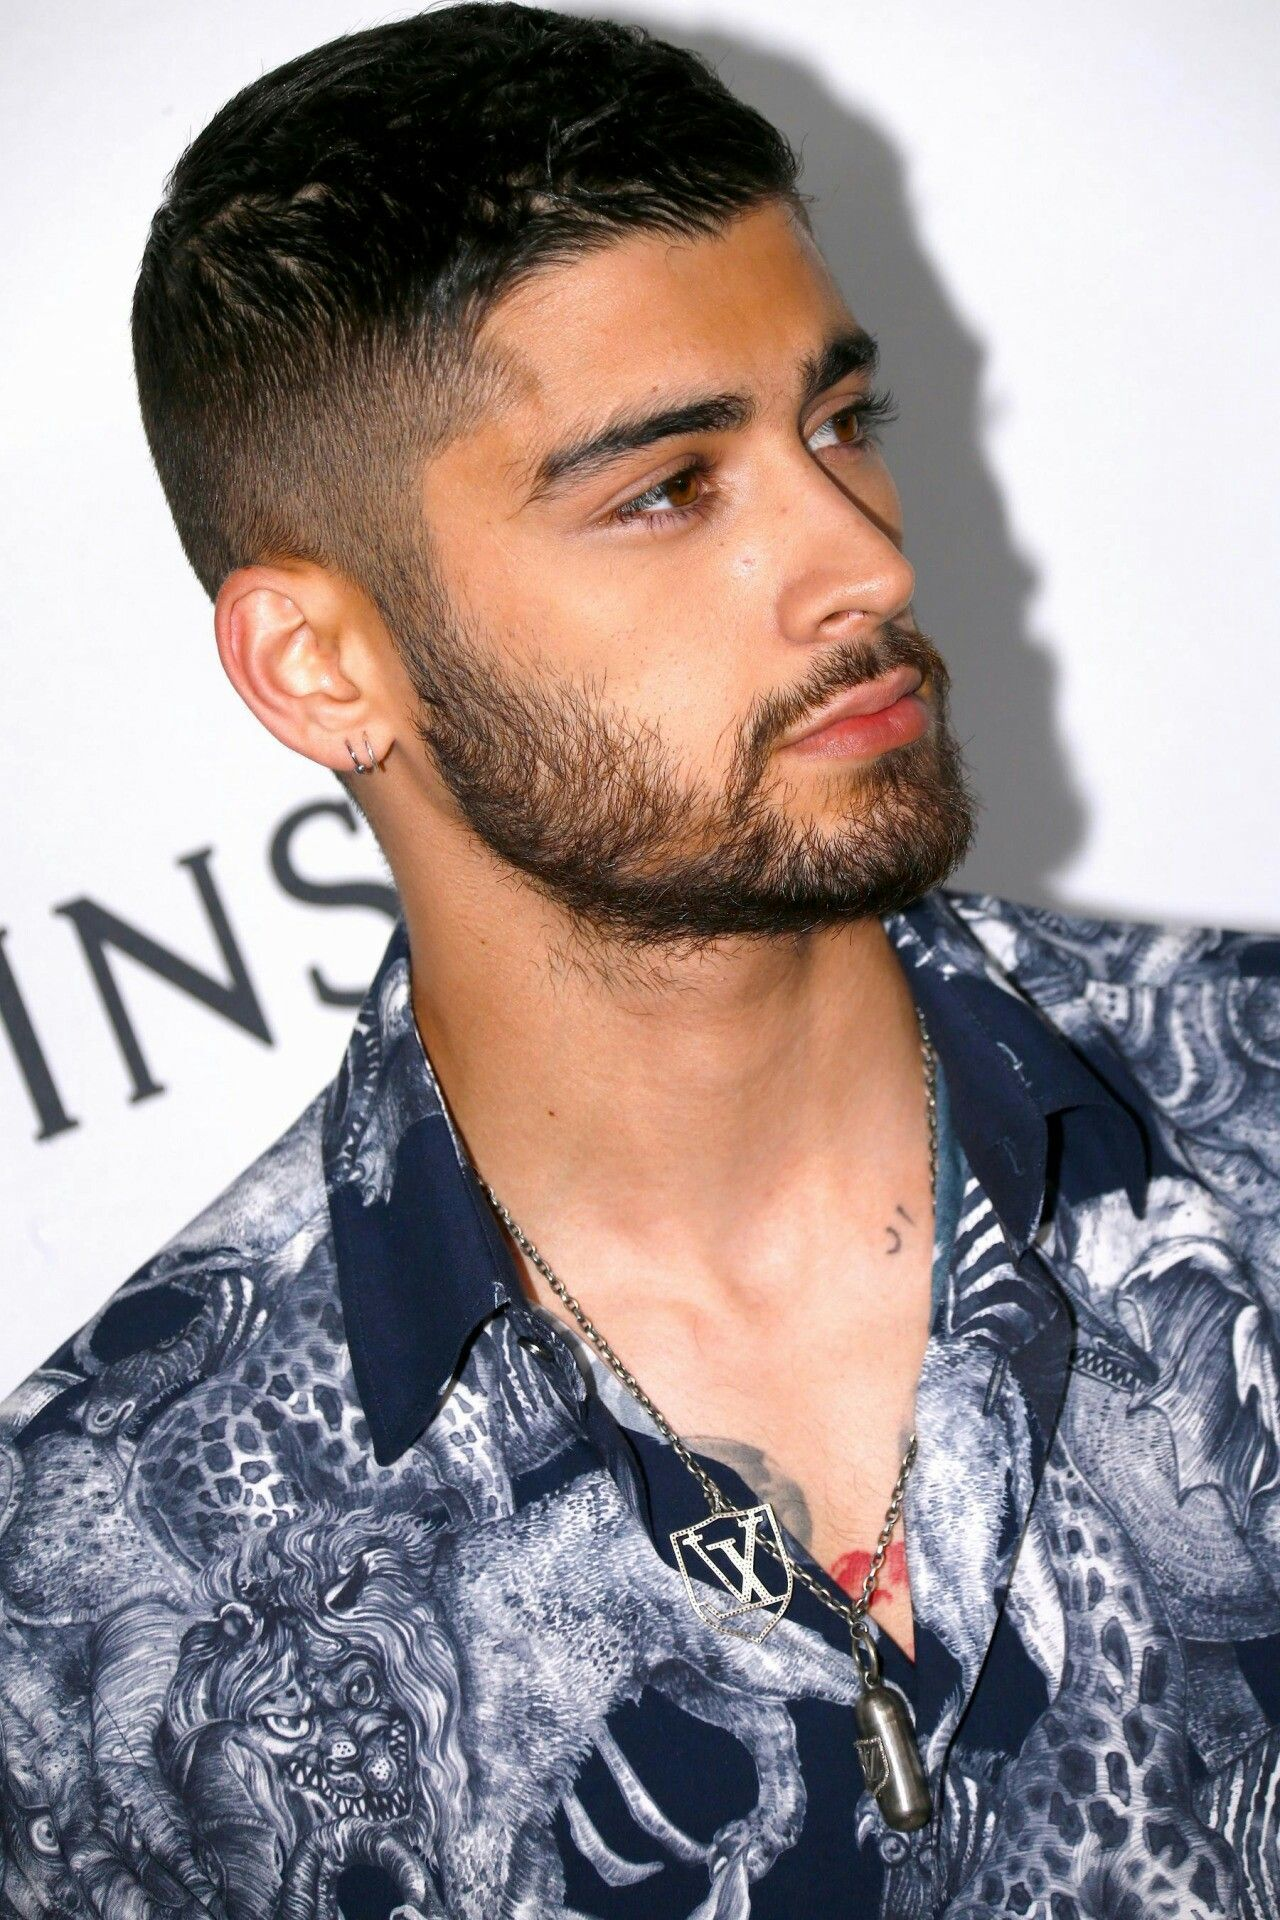 Short Hair Beard Zayn Malik Hairstyle Haircuts For Men Zayn Malik Pics